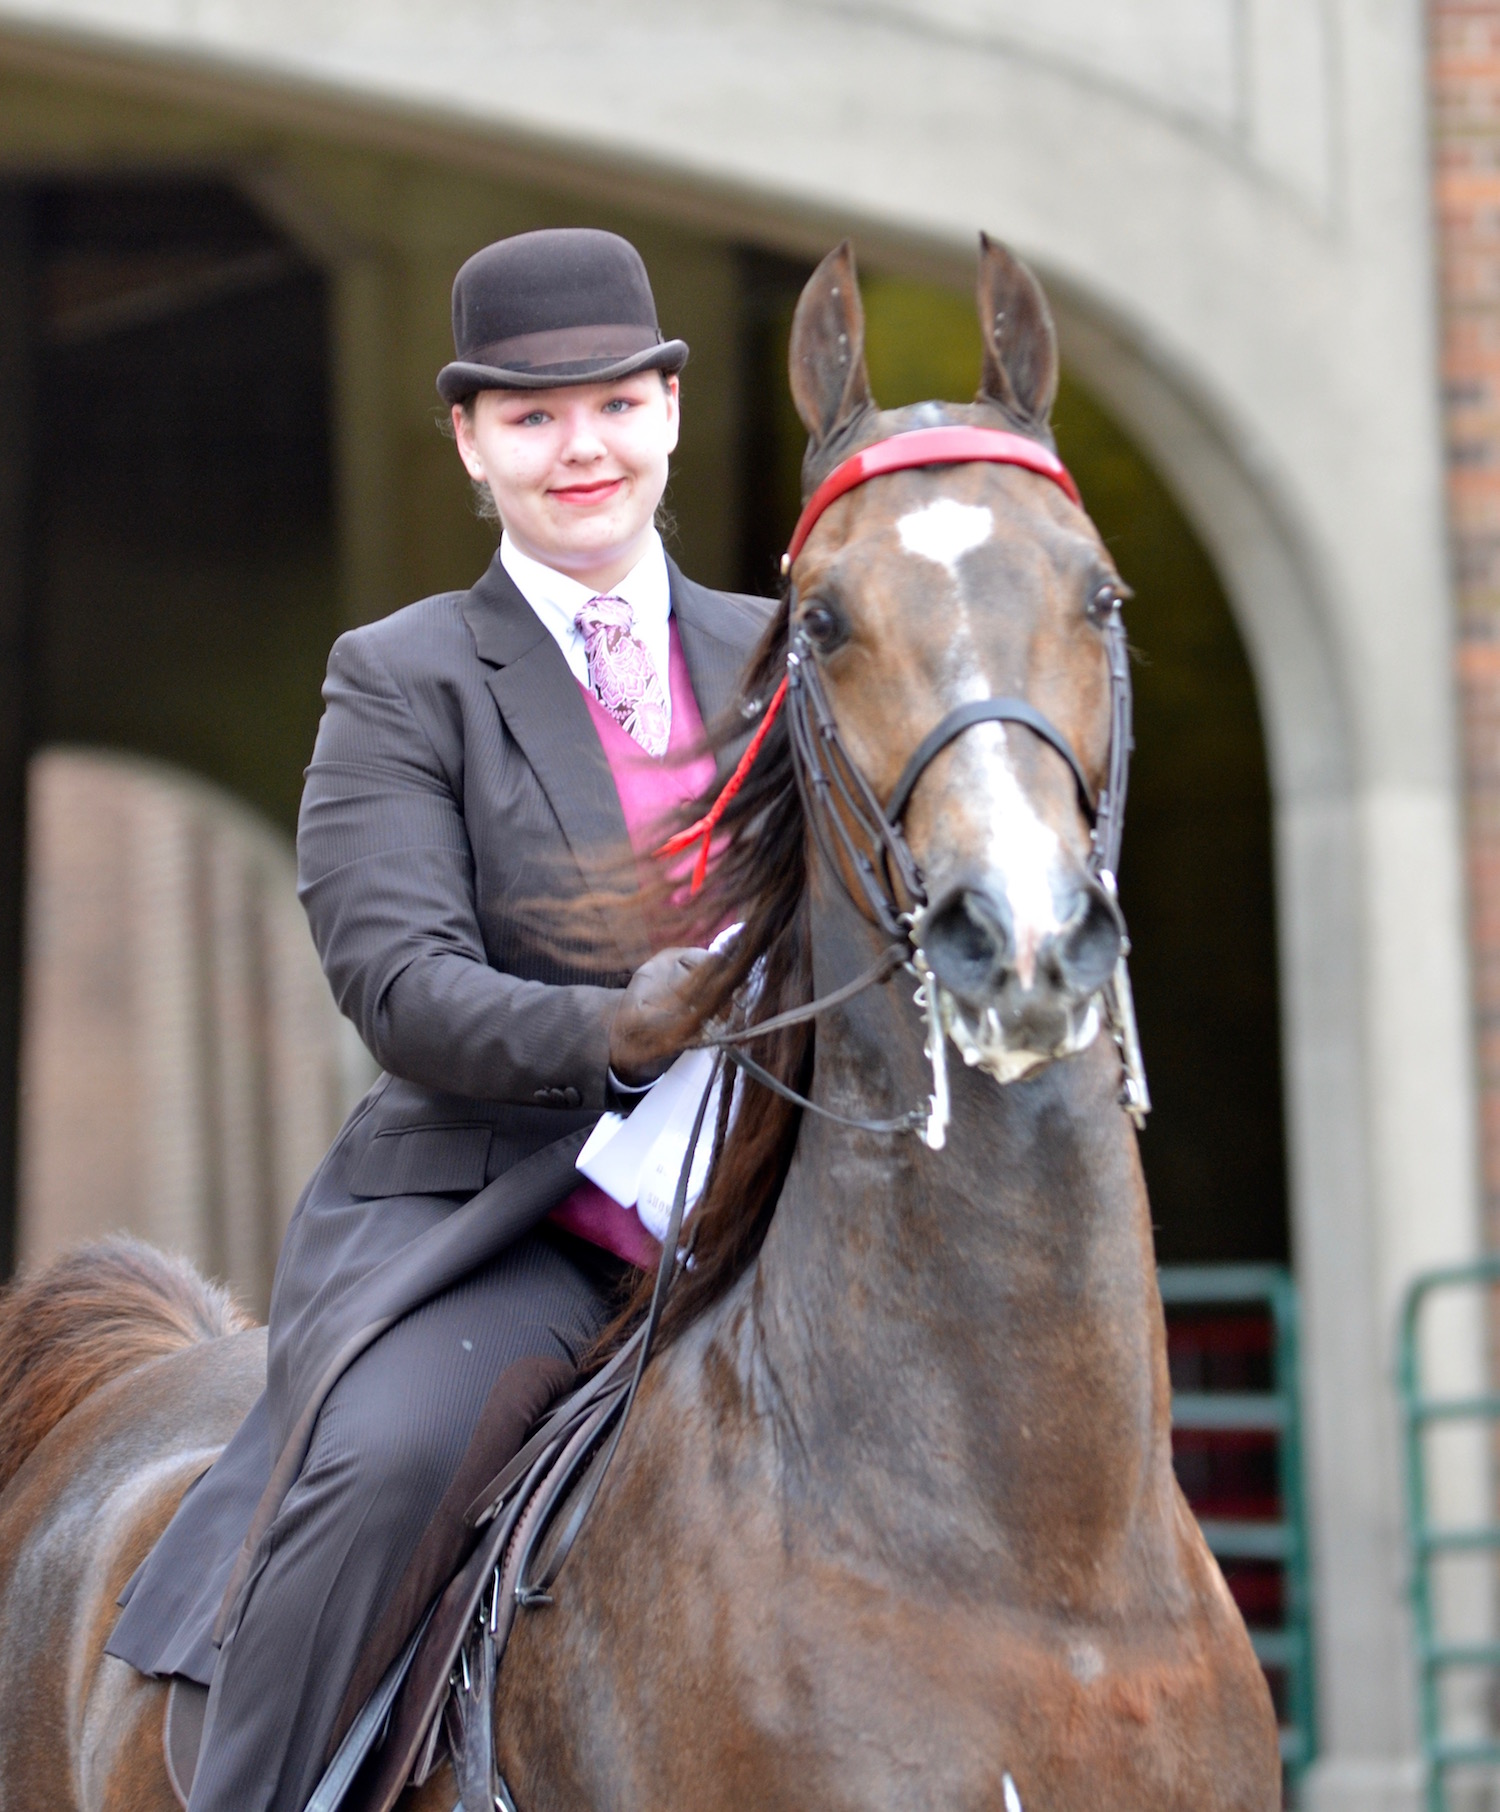 Happy show horses should look bright and interested in their surroundings,